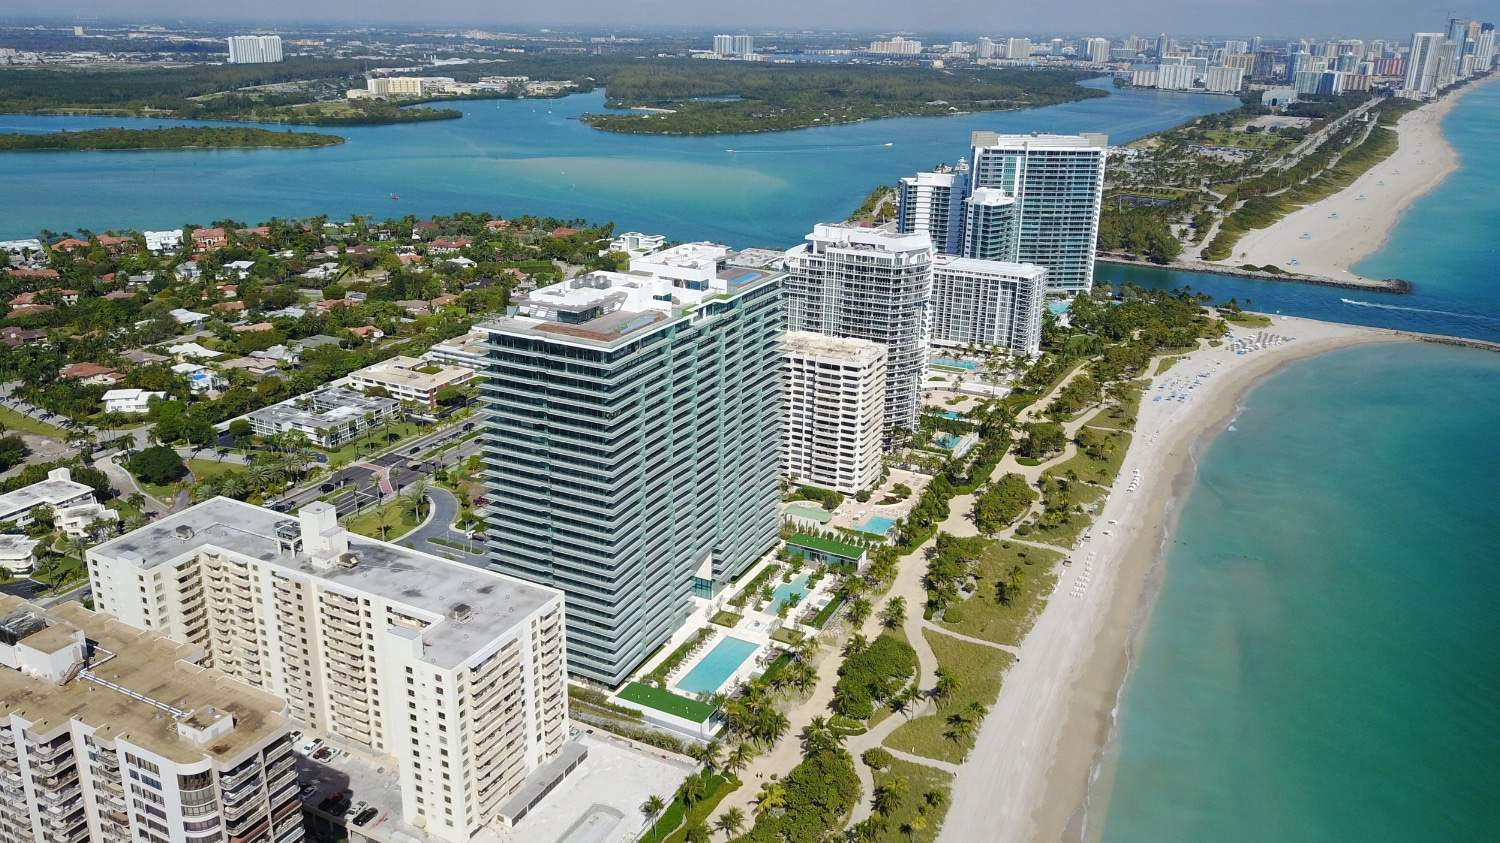 The Oceana Residences - Bal Harbour